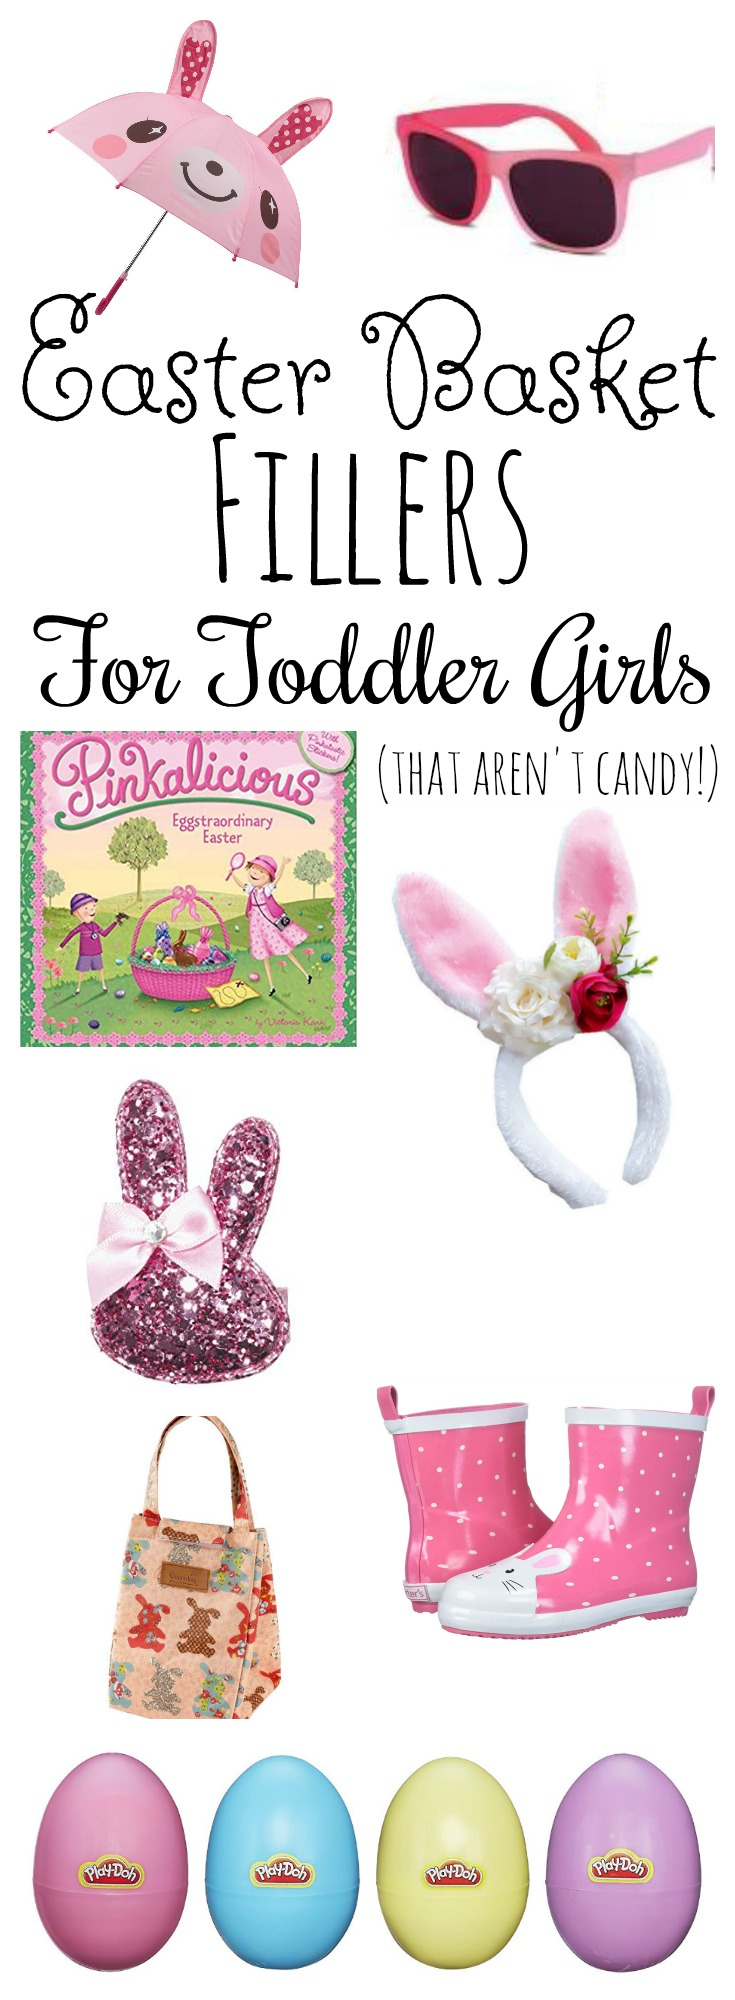 Non-Candy Easter Basket Filler Ideas for Toddler Girls